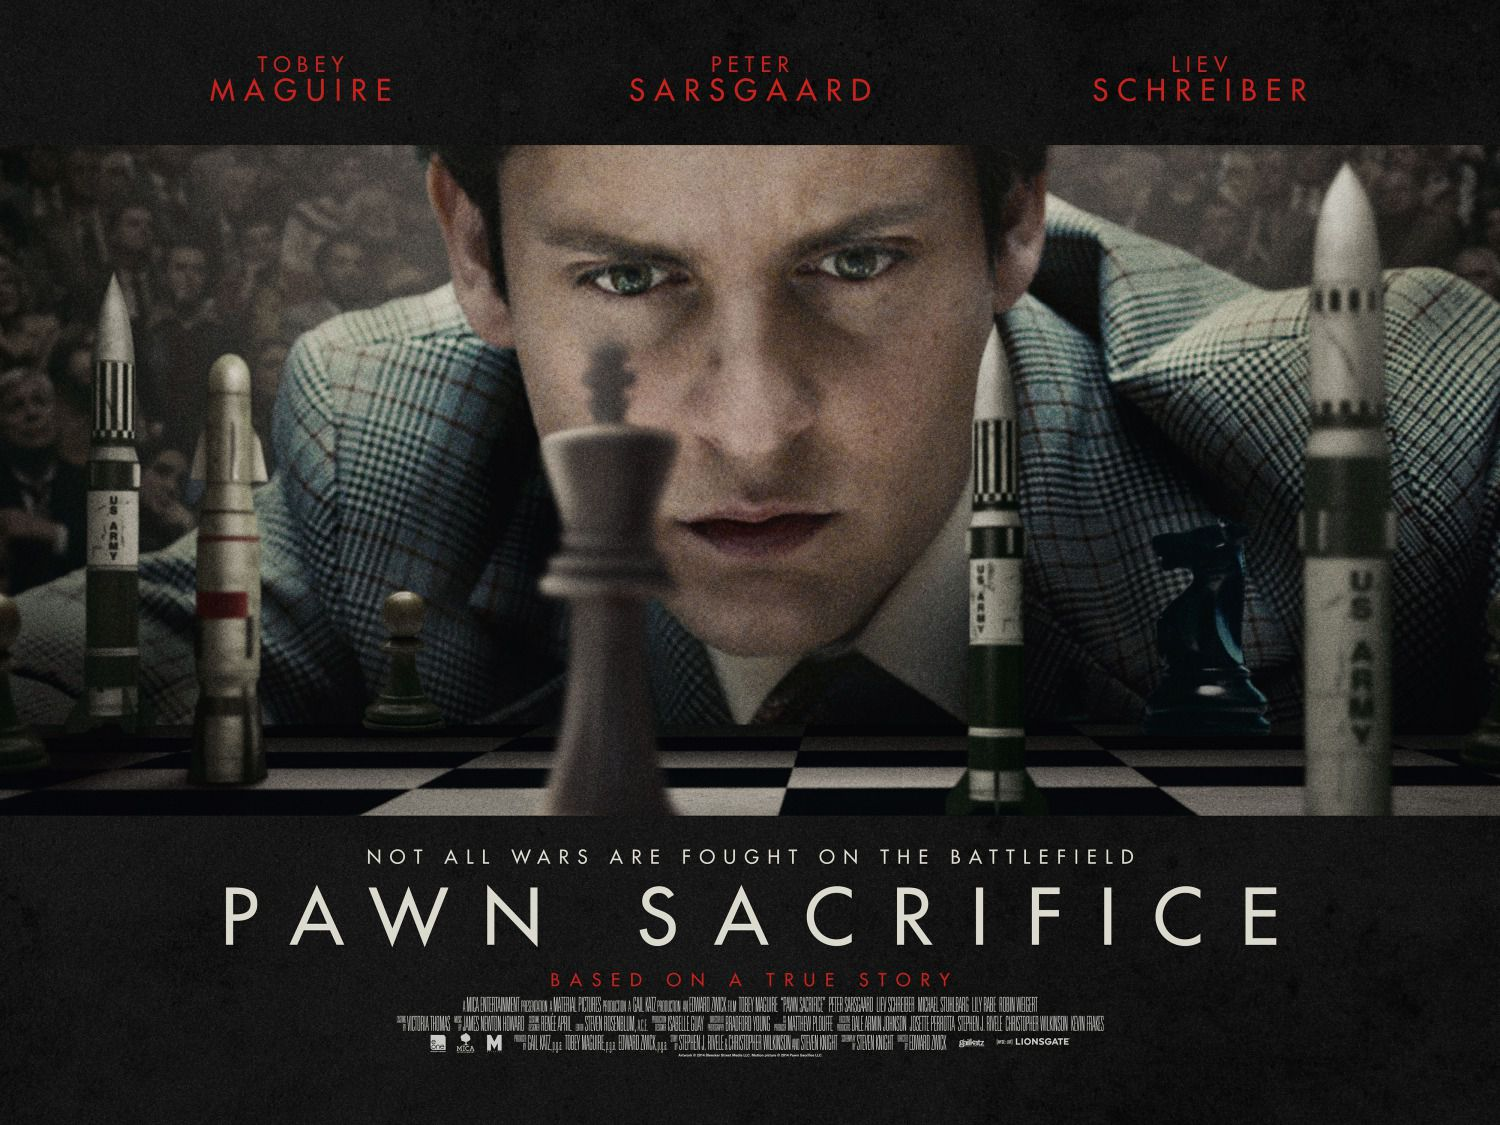 Pawn Sacrifice - La Grande Partita - Tobey Maguire - not all wars are fought on the battlefield - based on a true story